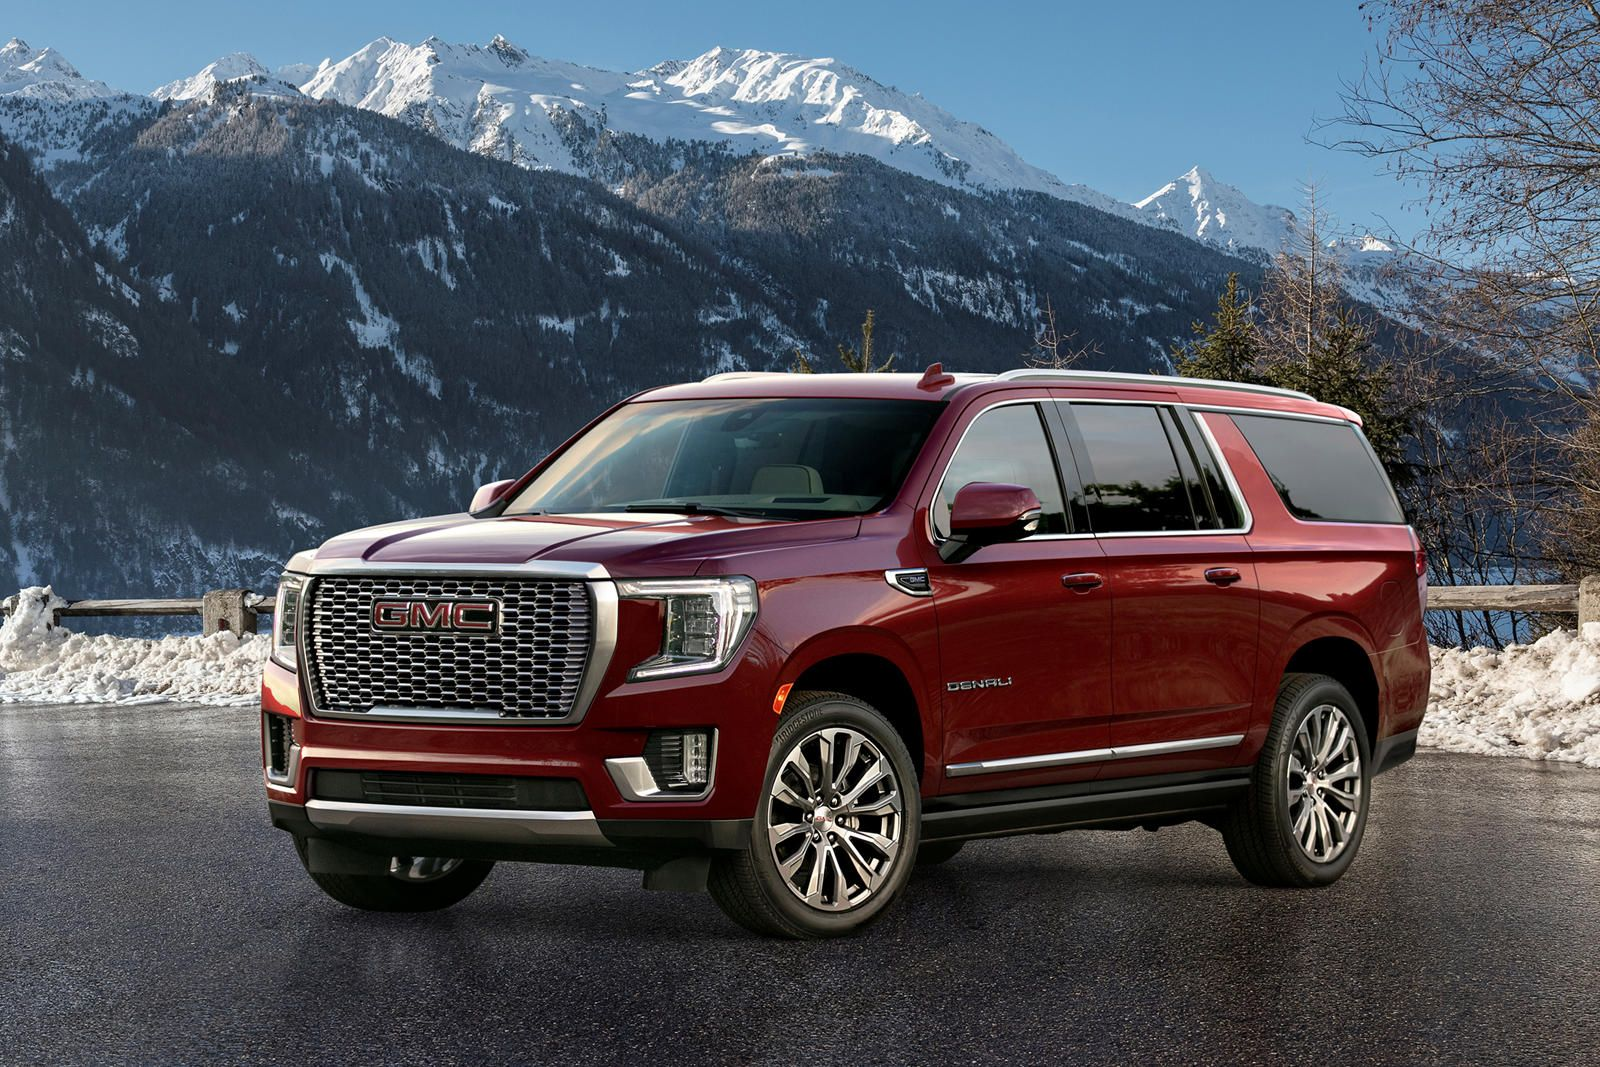 2021 Gmc Yukon Xl First Look Review Big Size Big Luxury Go Anywhere In Style And Comfort In 2020 Gmc Yukon Gmc Yukon Xl Gmc Yukon Denali